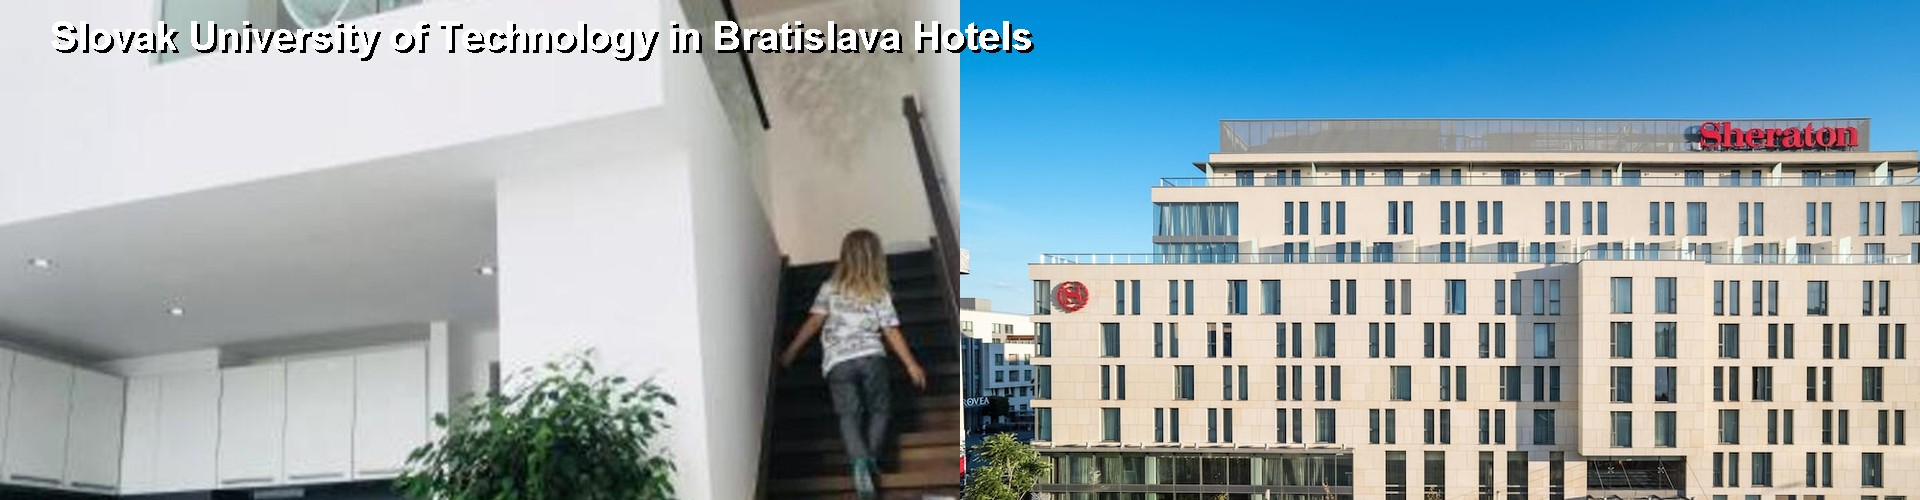 5 Best Hotels near Slovak University of Technology in Bratislava